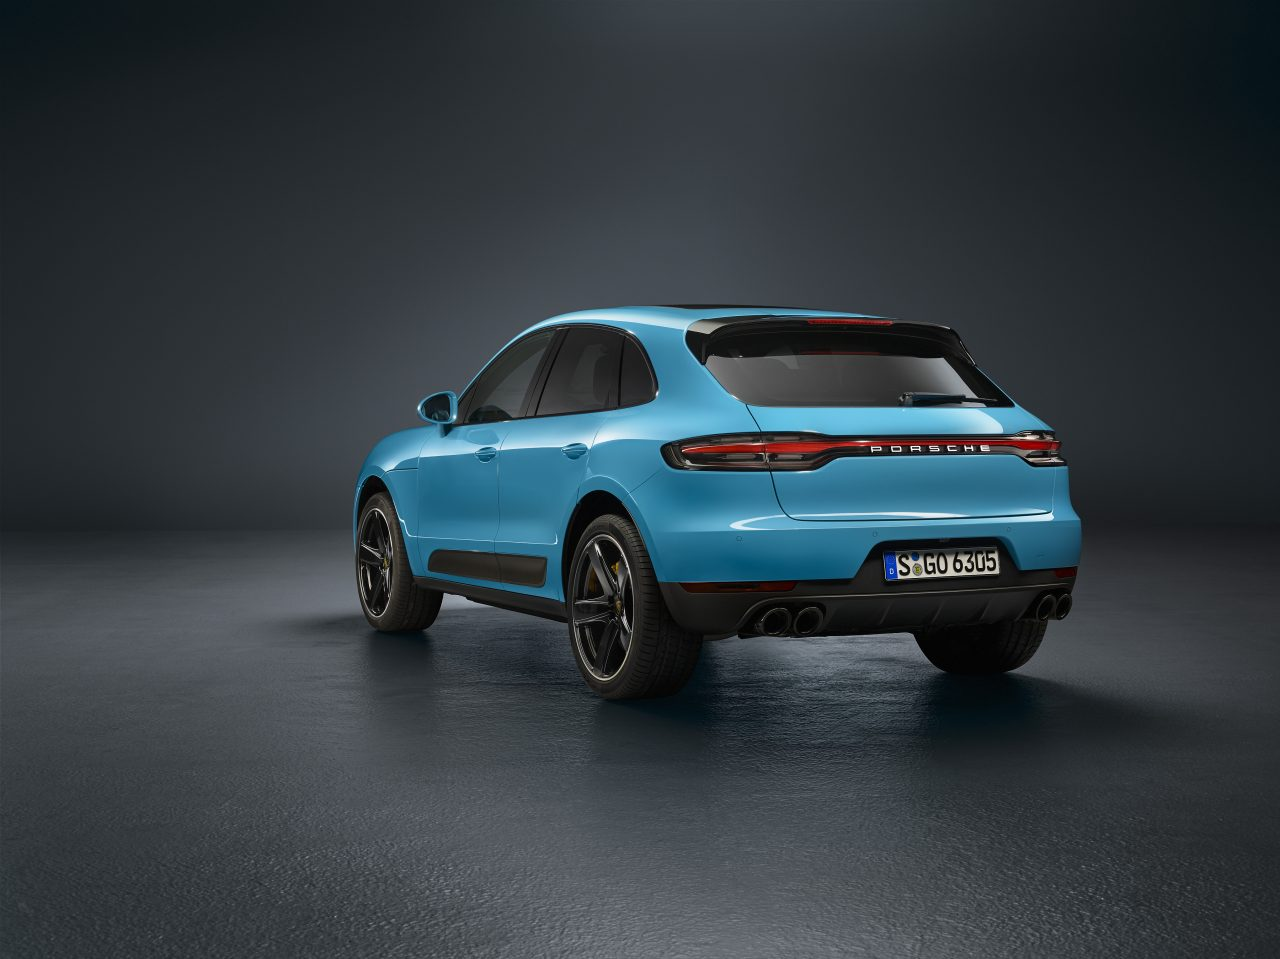 2019 Porsche Macan announced